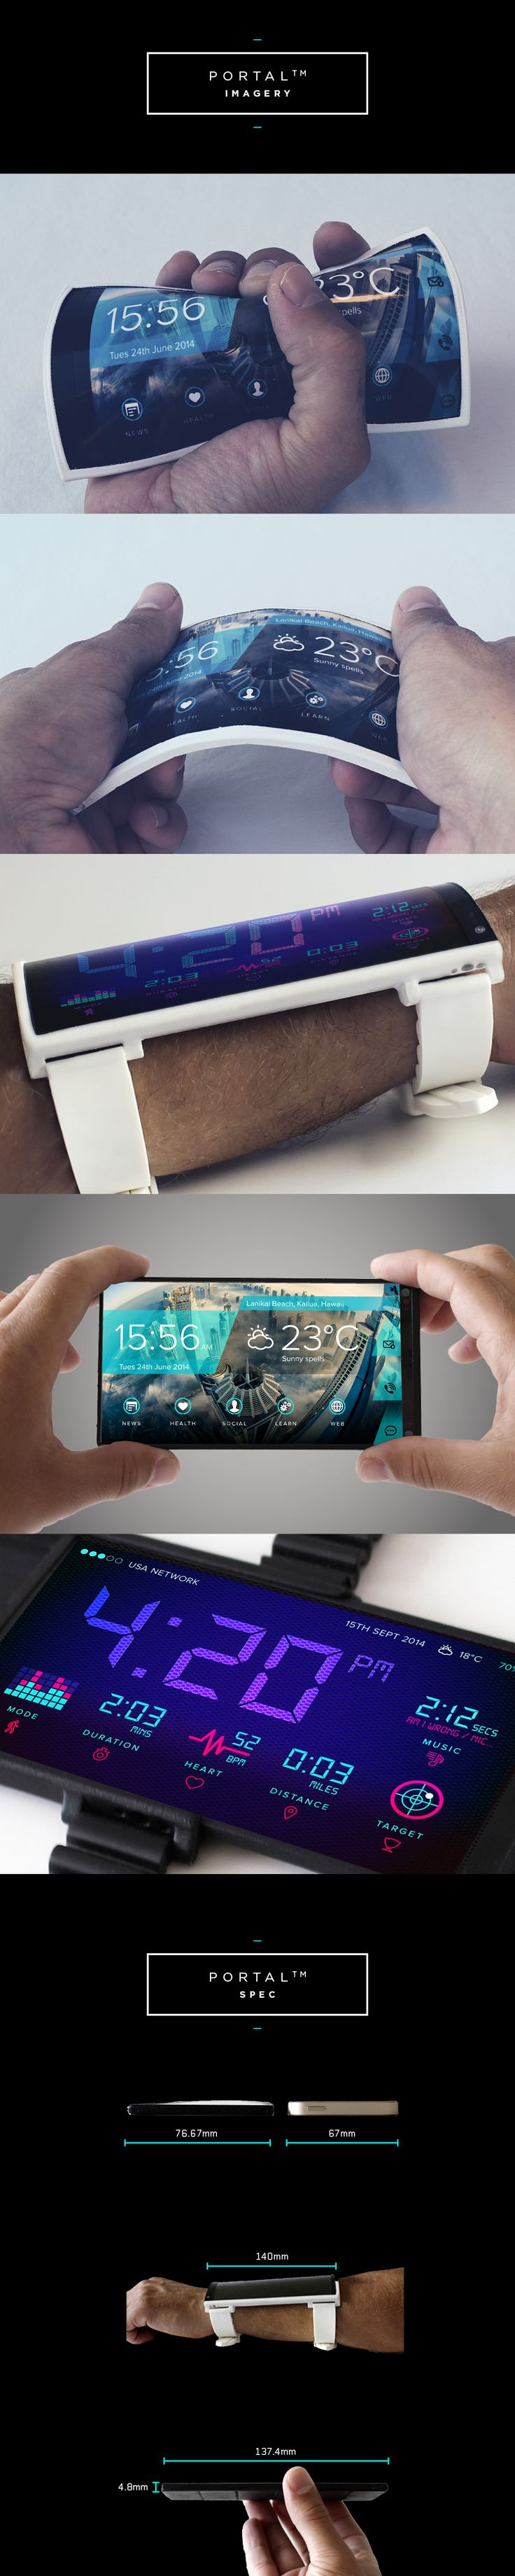 Portal Wearable Smartphone DisruptOverload | Indiegogo [ Vacupack.com ] #technology #quality #fresh